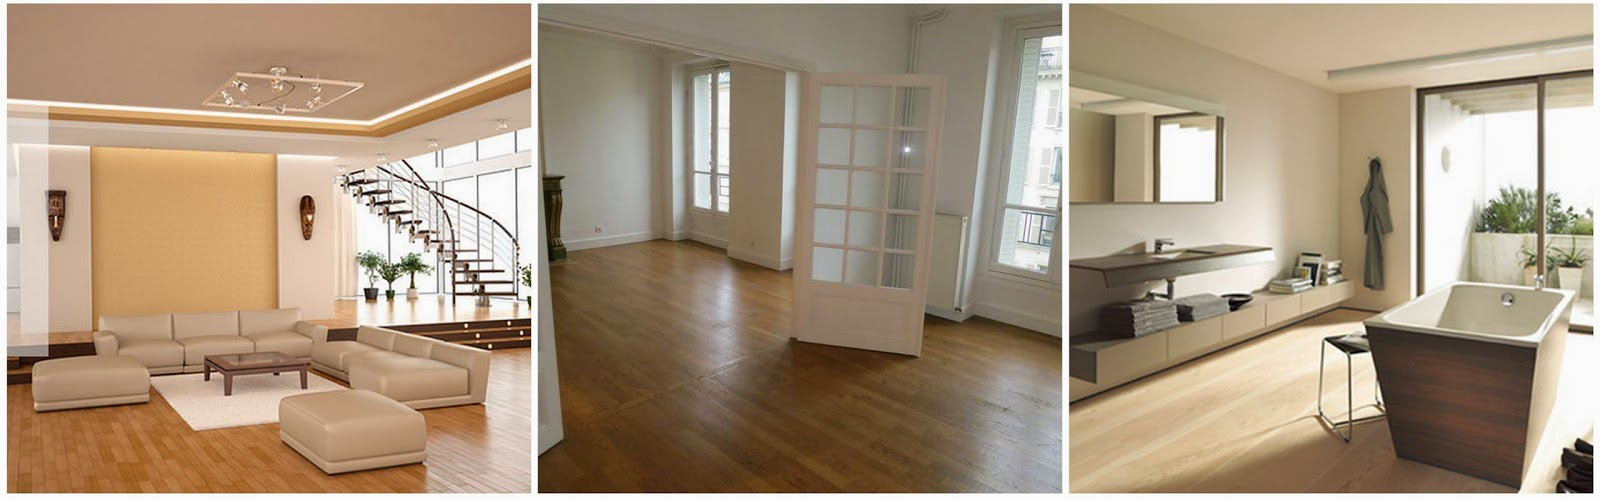 Travaux appartement 92120 montrouge